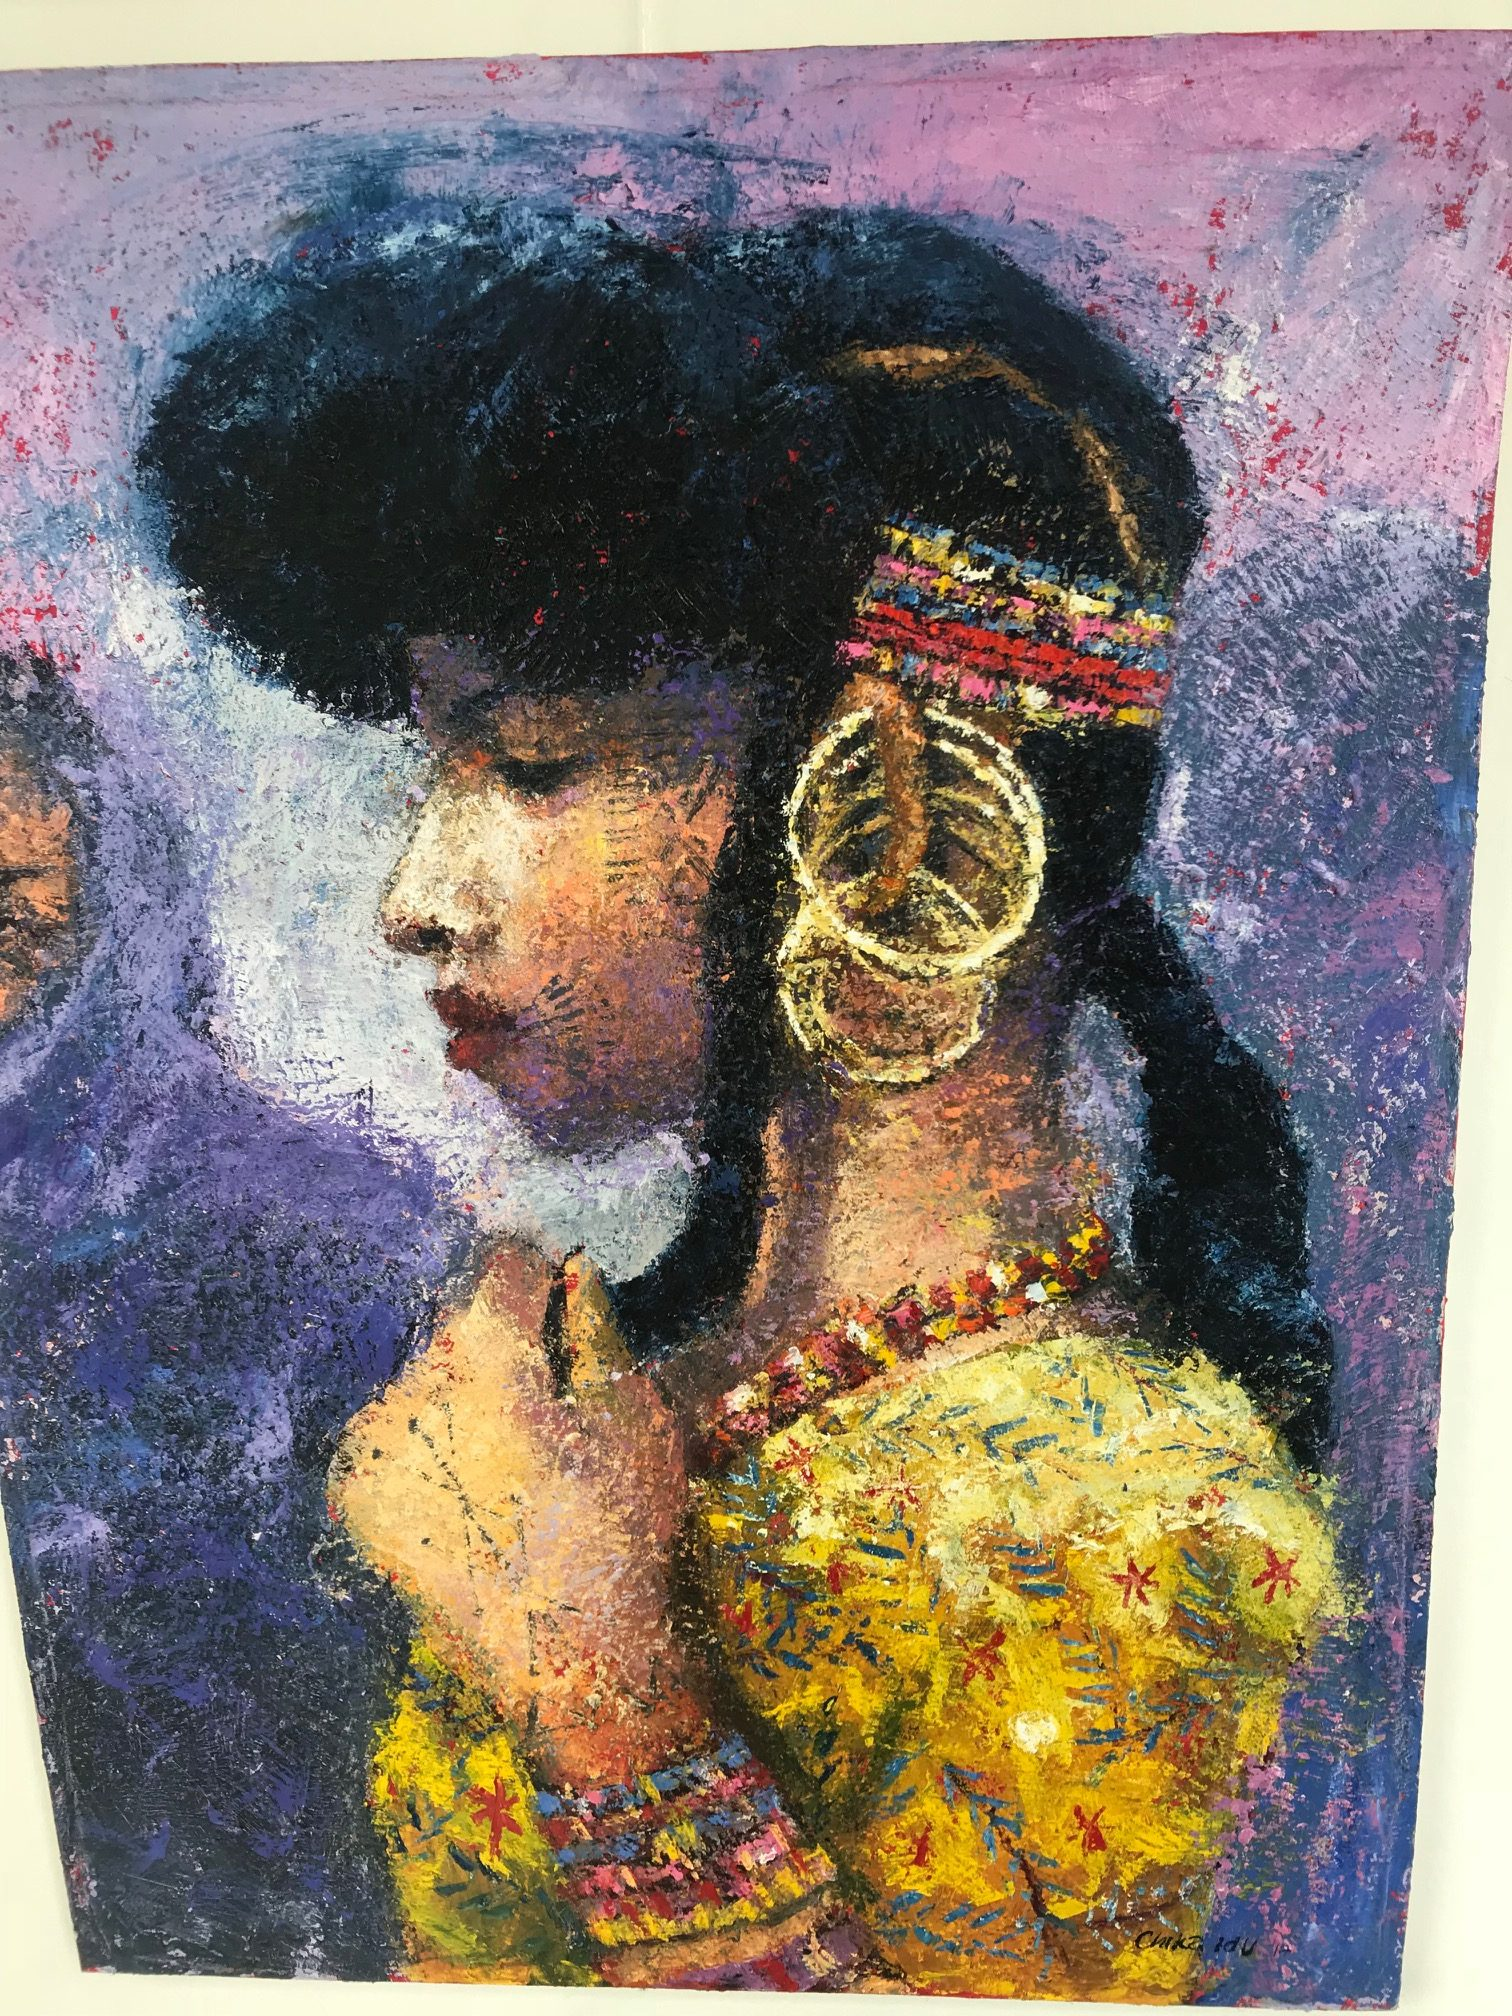 Nigerian artwork